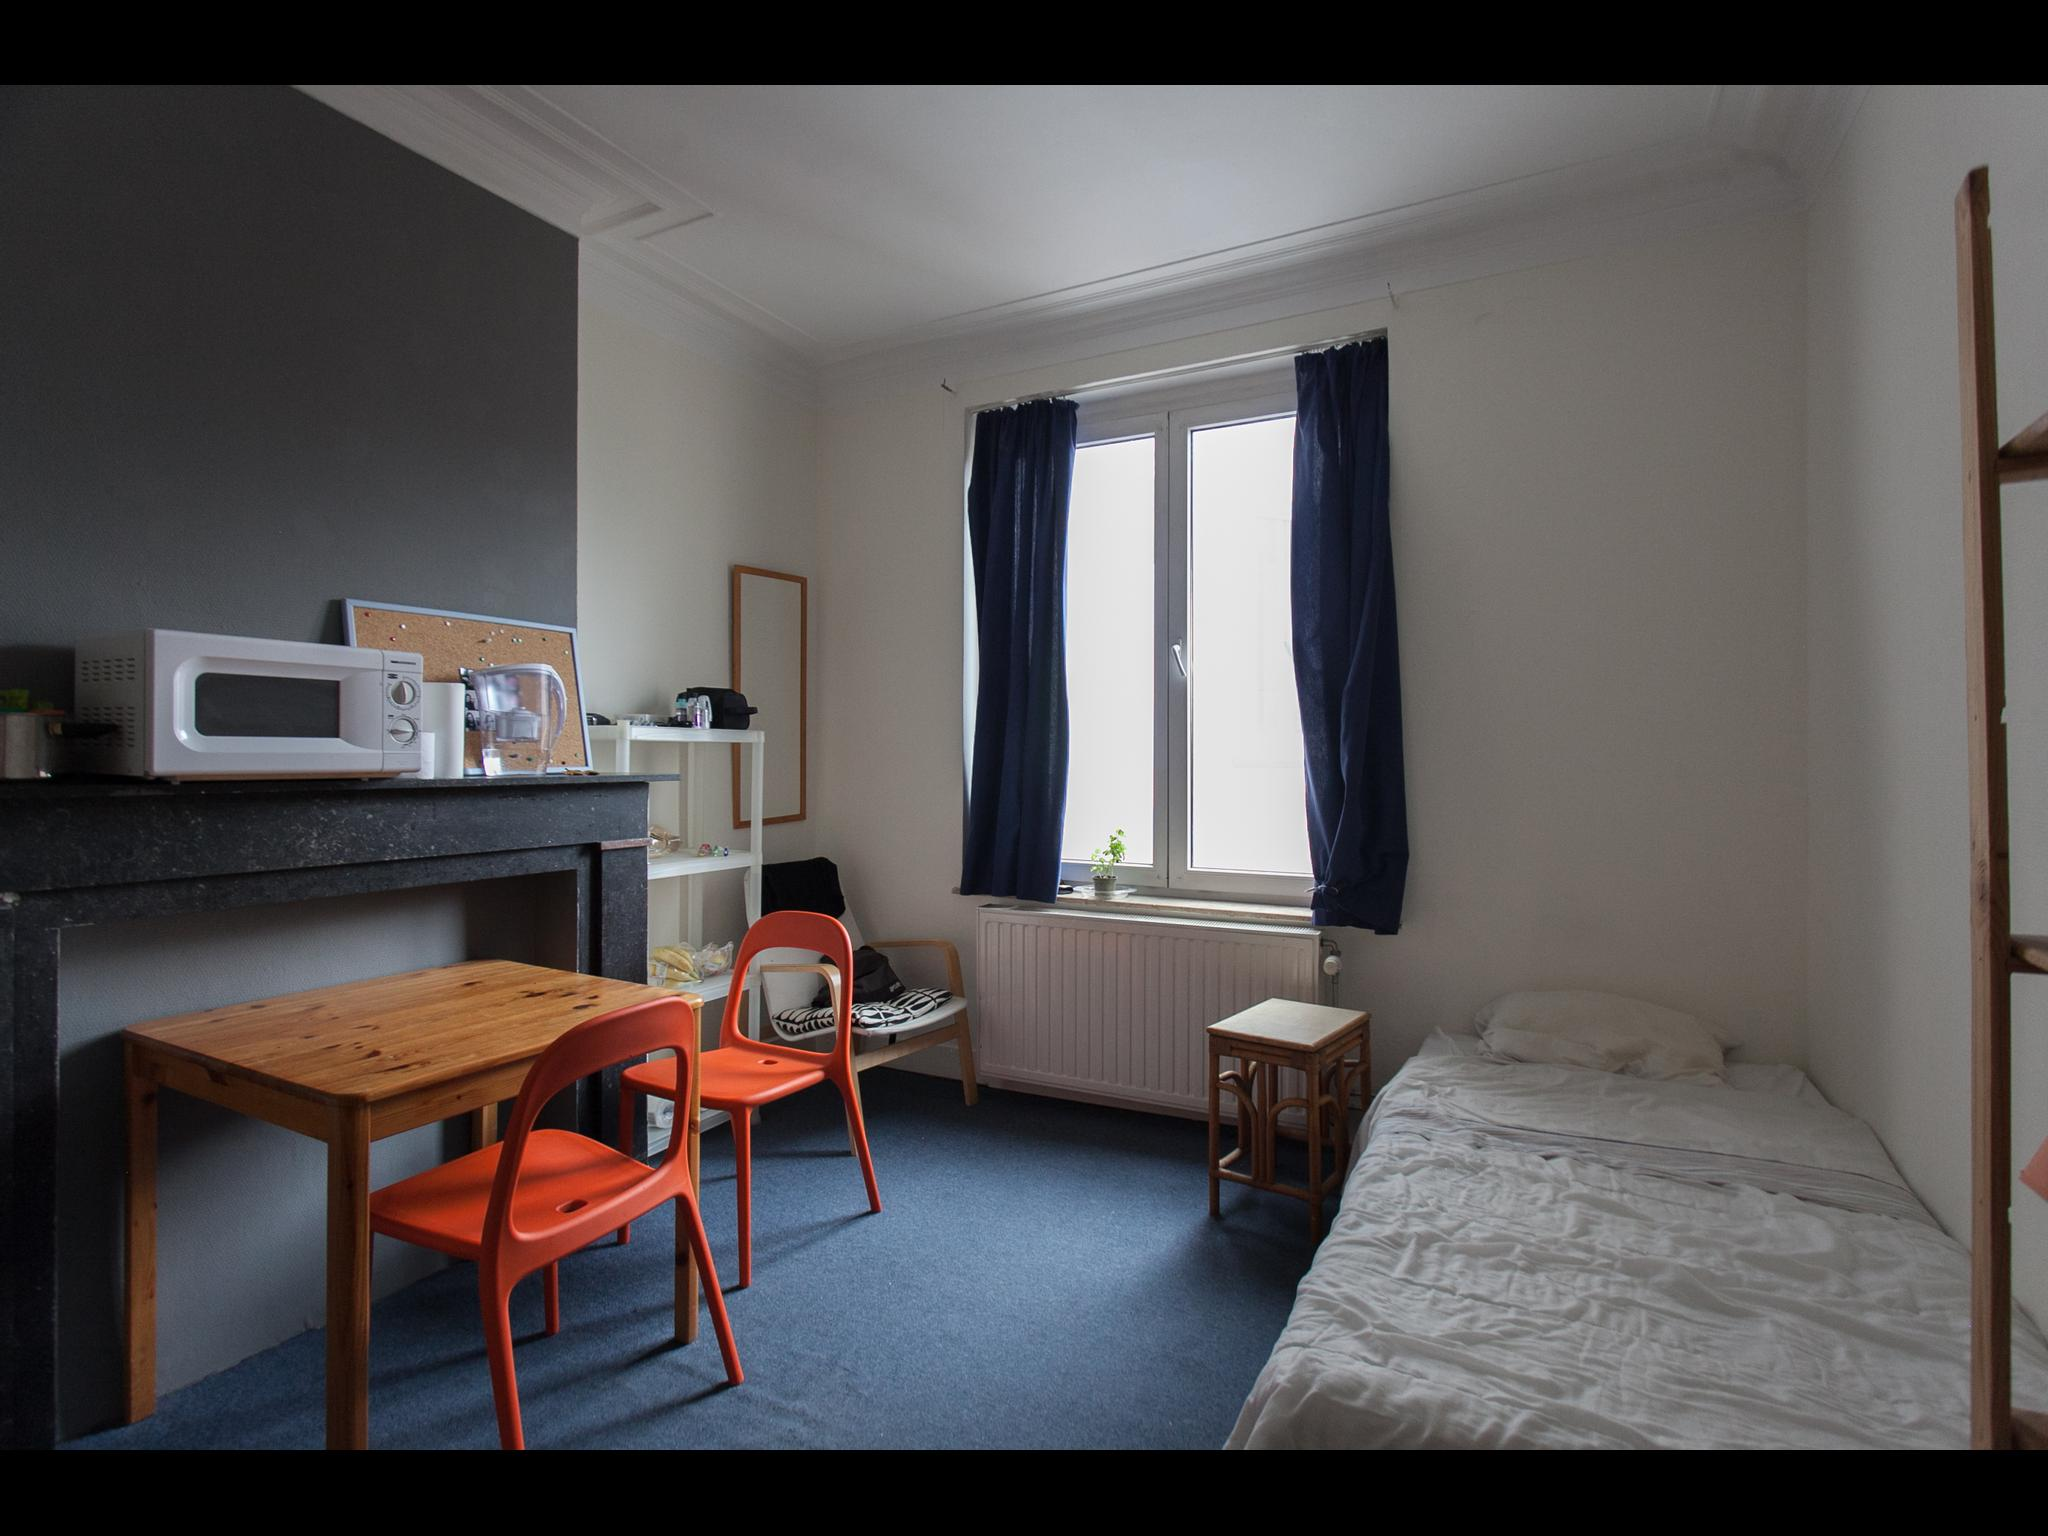 Rue Luther - Bedroom in a shared flat in Brussels